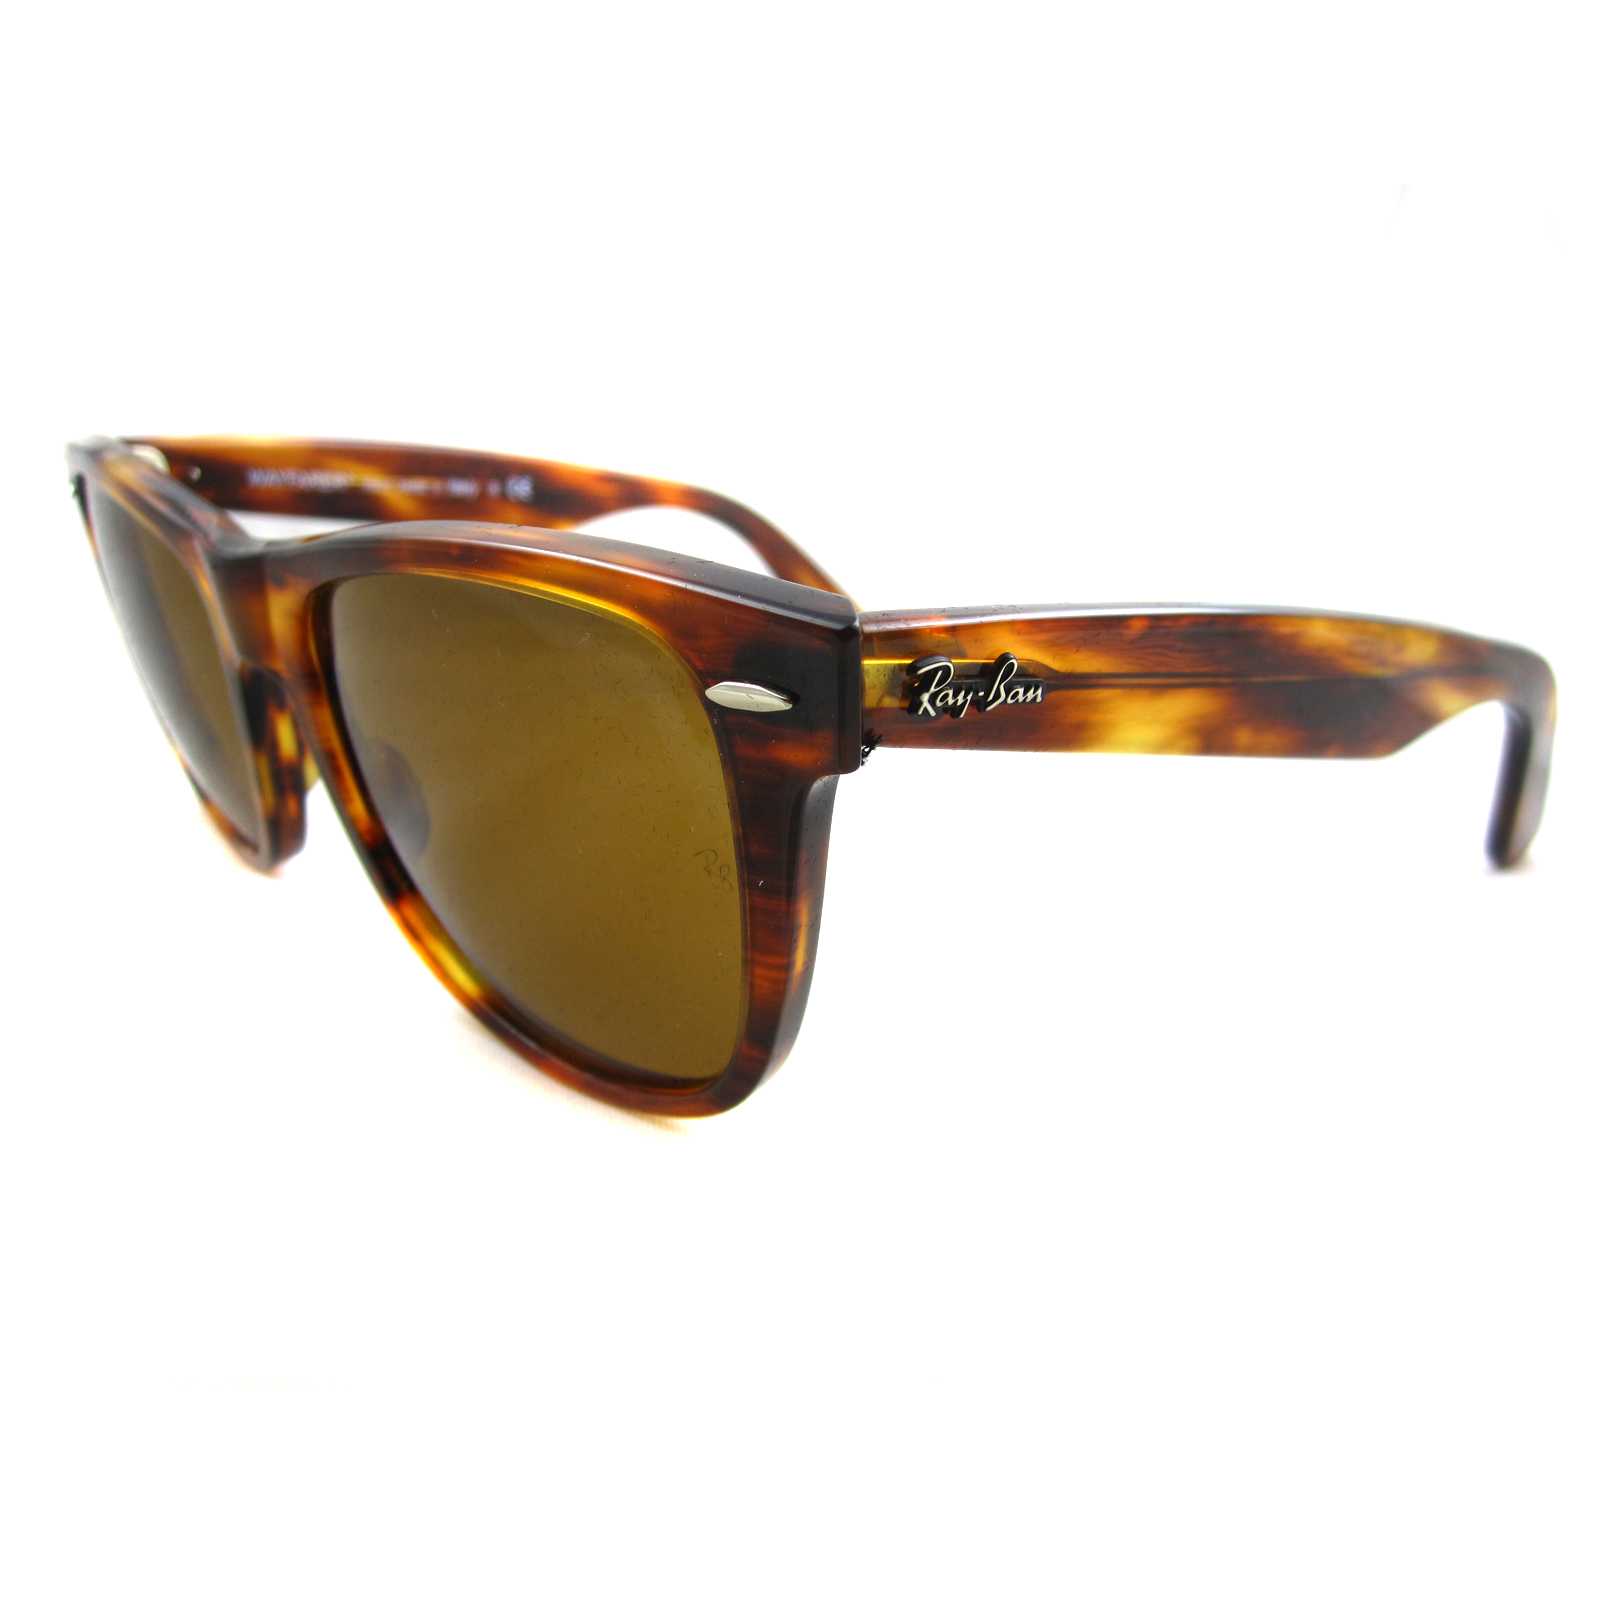 21675919d5 Ray Bans 2140 54mm « Heritage Malta